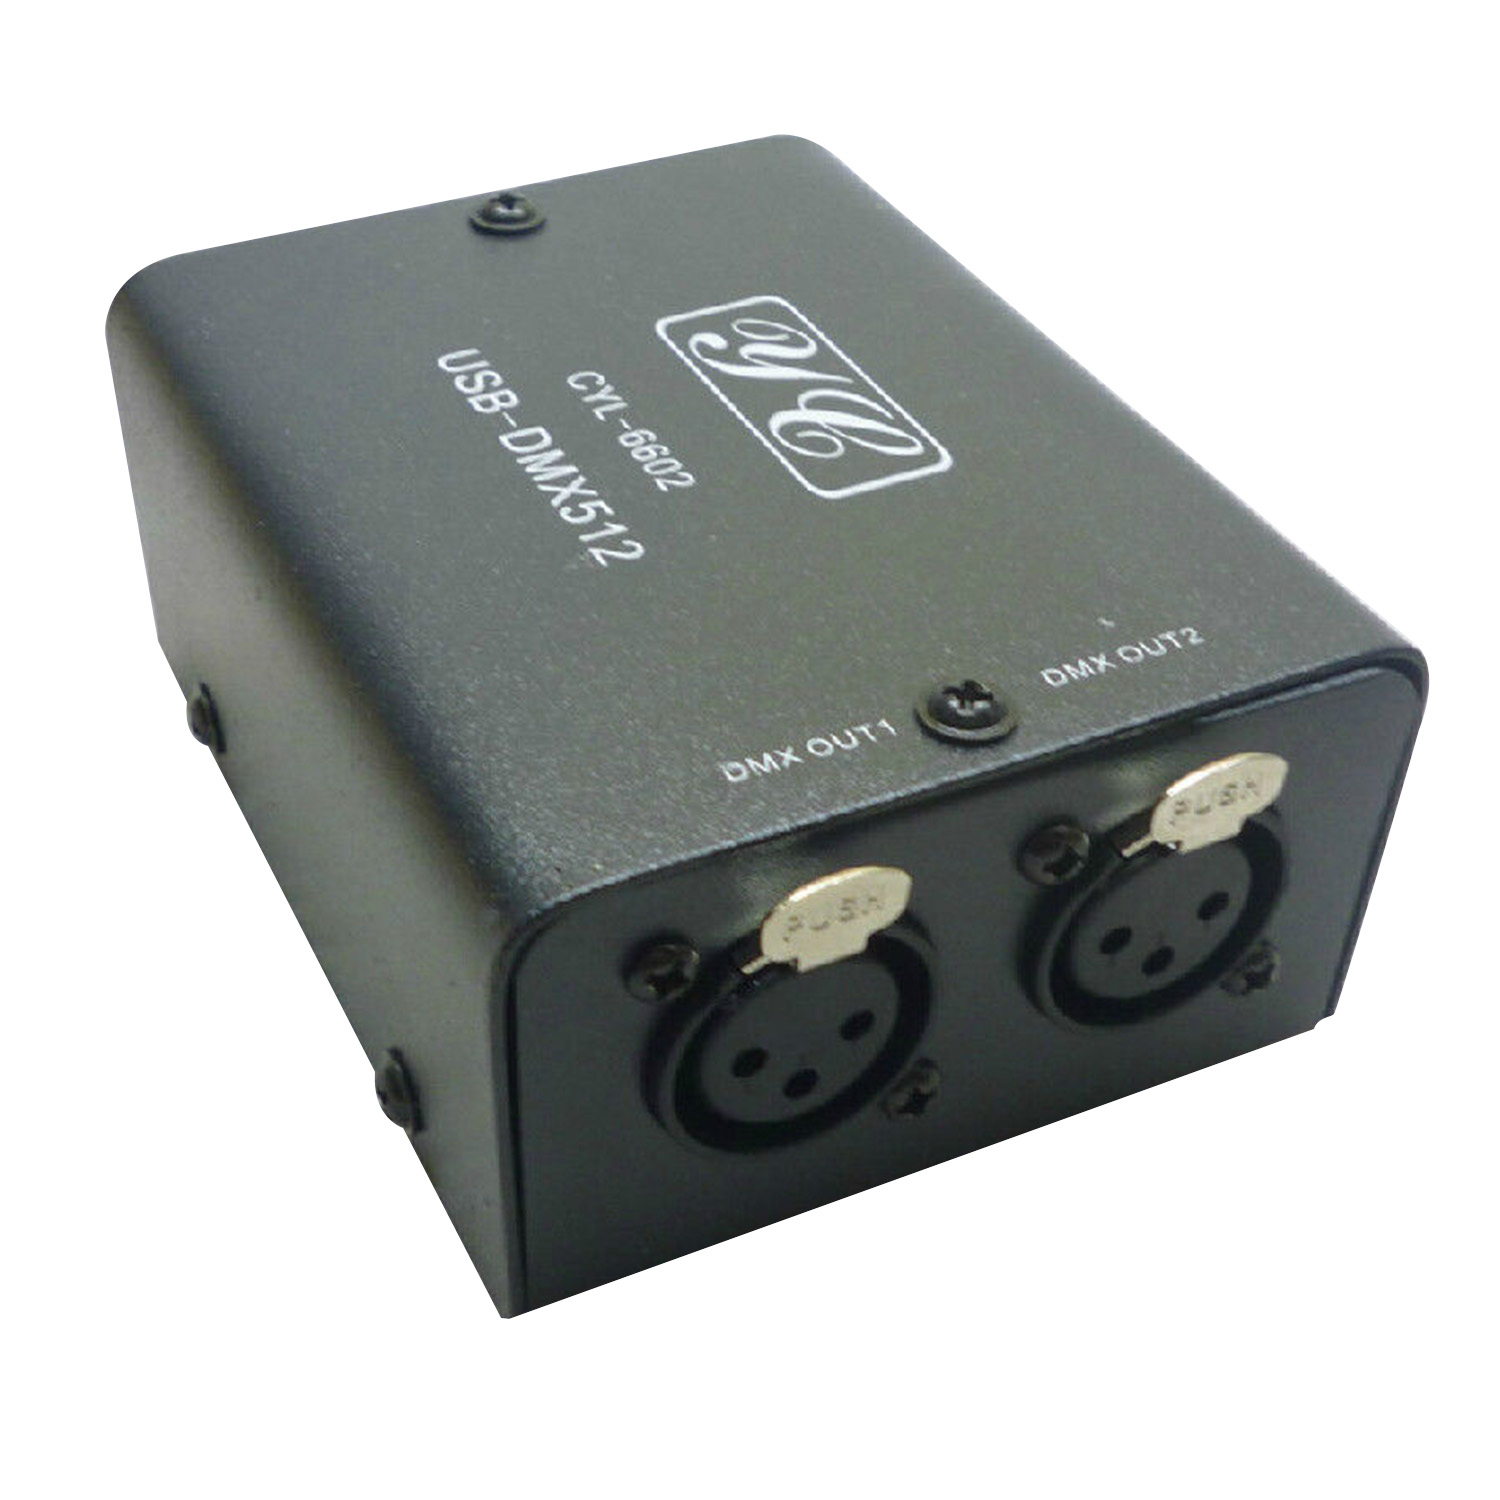 512-Channel <font><b>USB</b></font> to DMX <font><b>DMX512</b></font> LED light DMX-Stage Lighting Controller Das light image